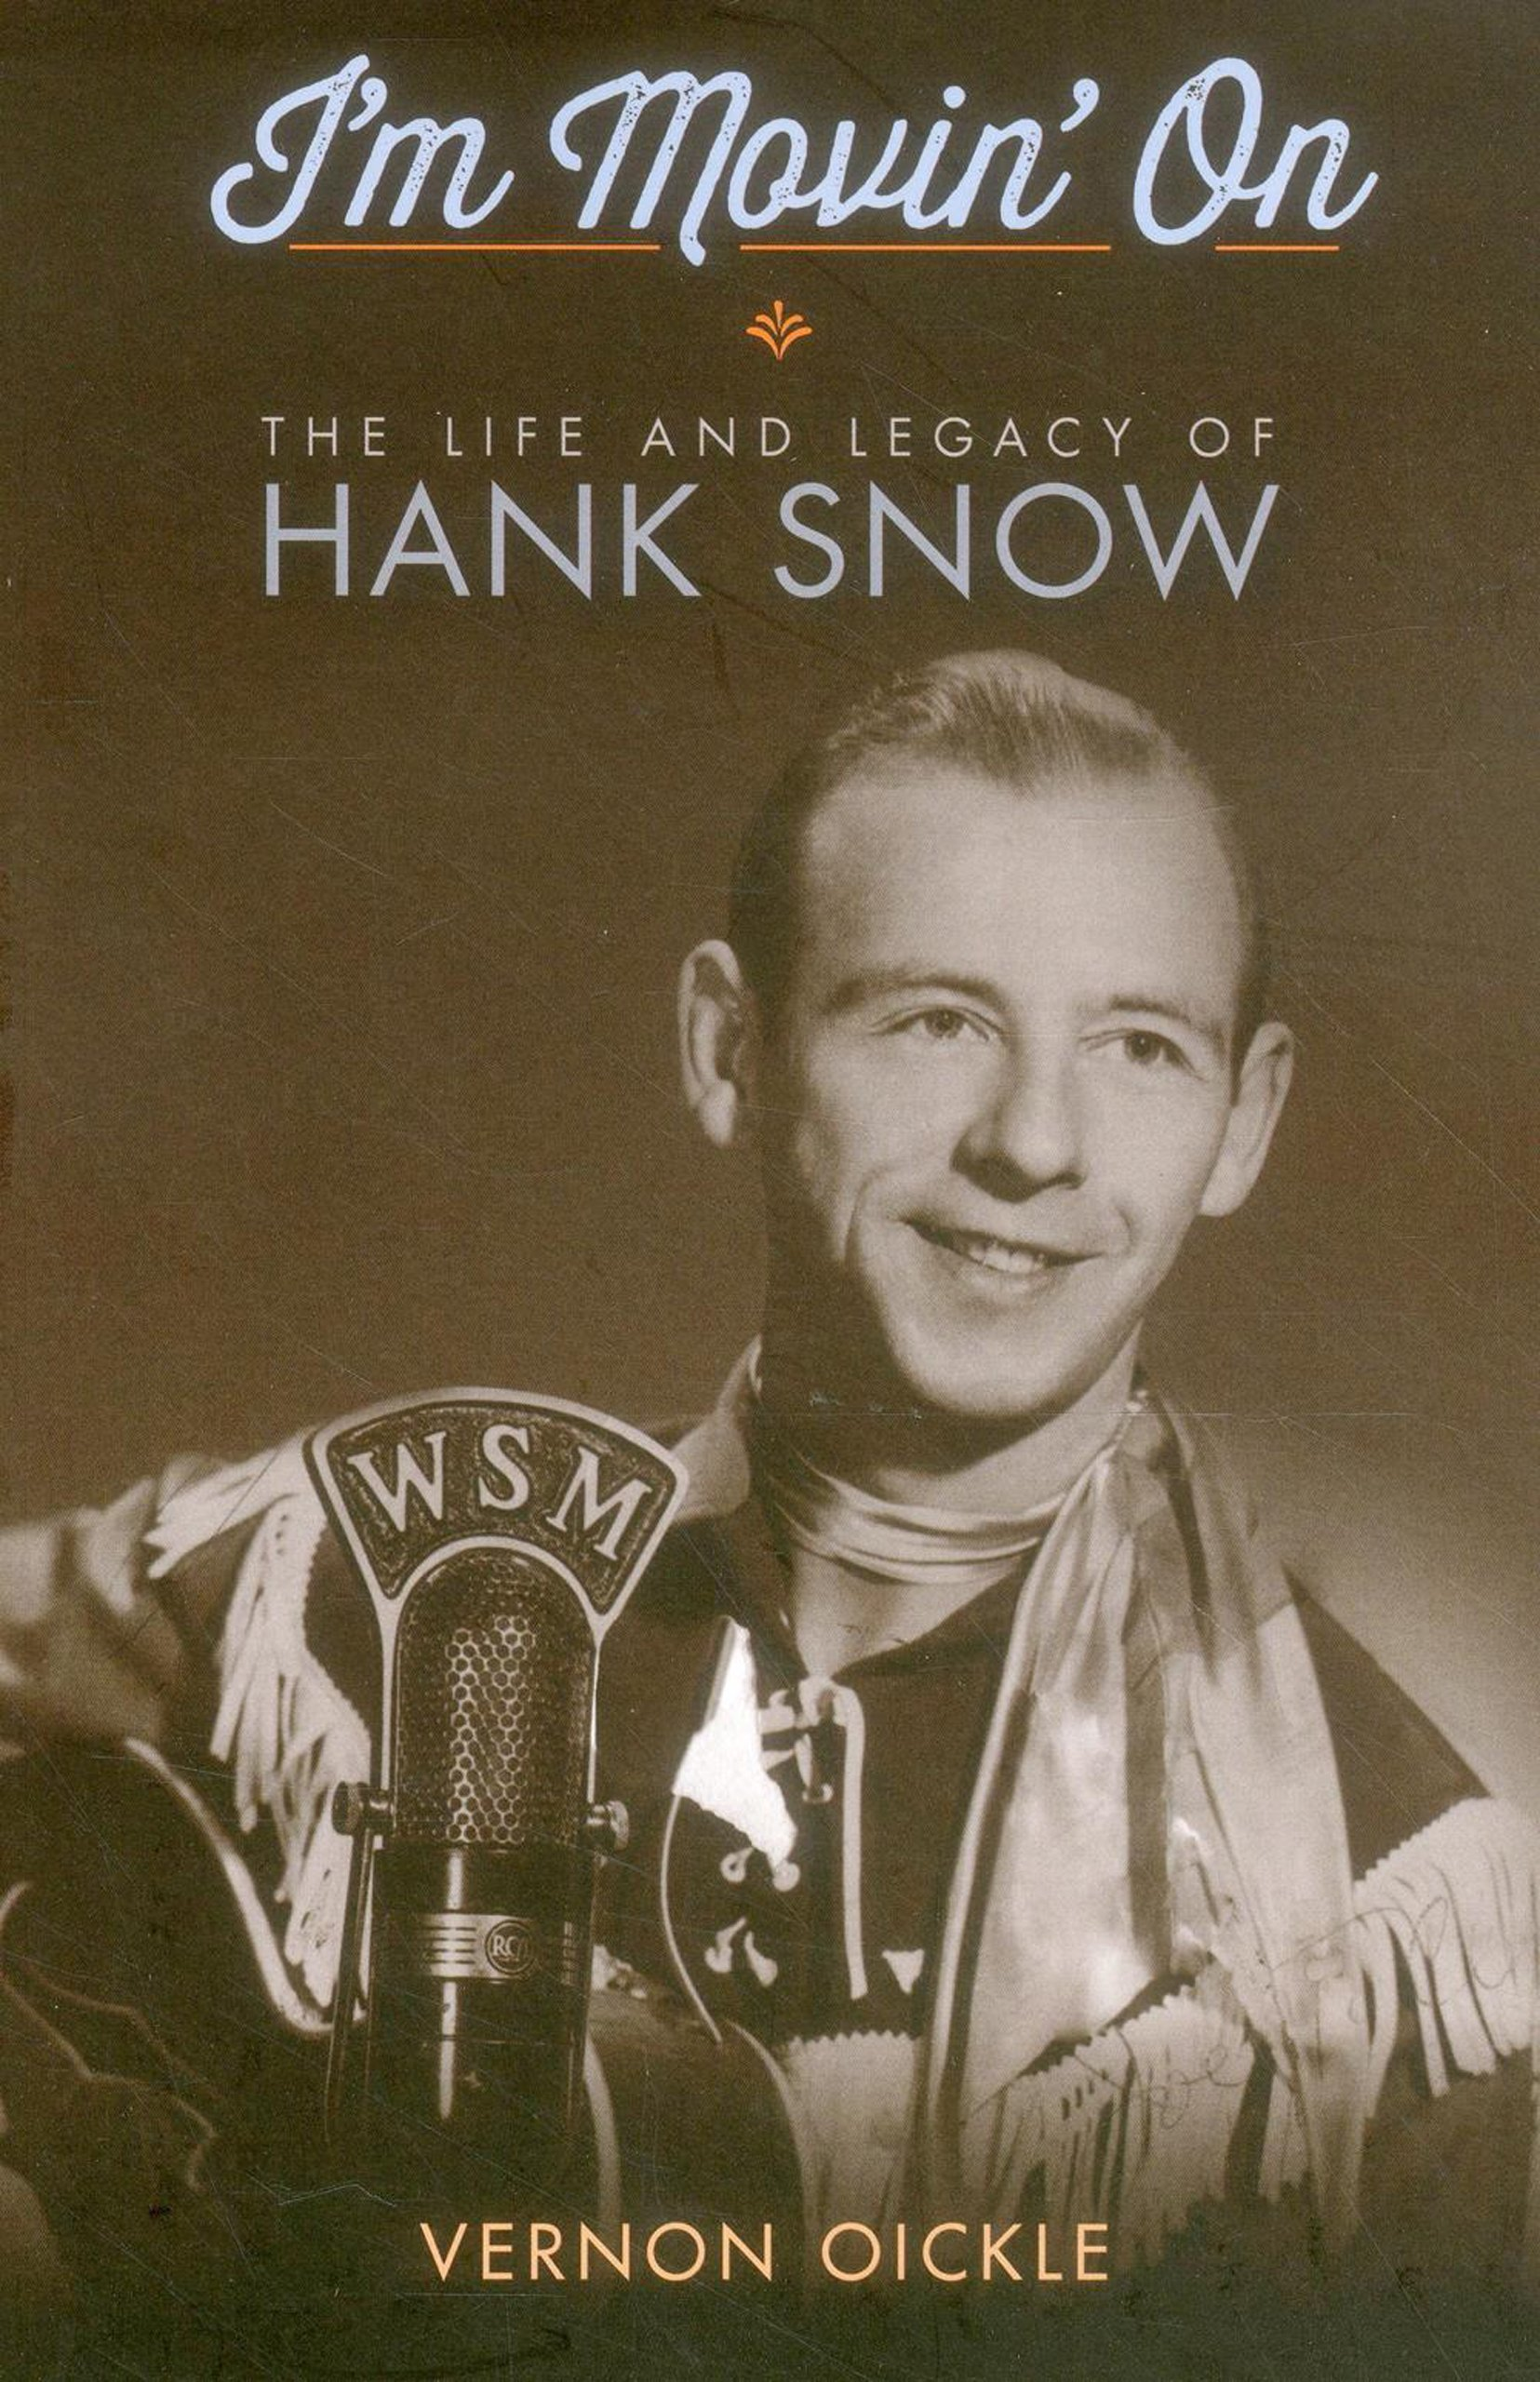 I'm Movin' On: The Life and Legacy of Hank Snow